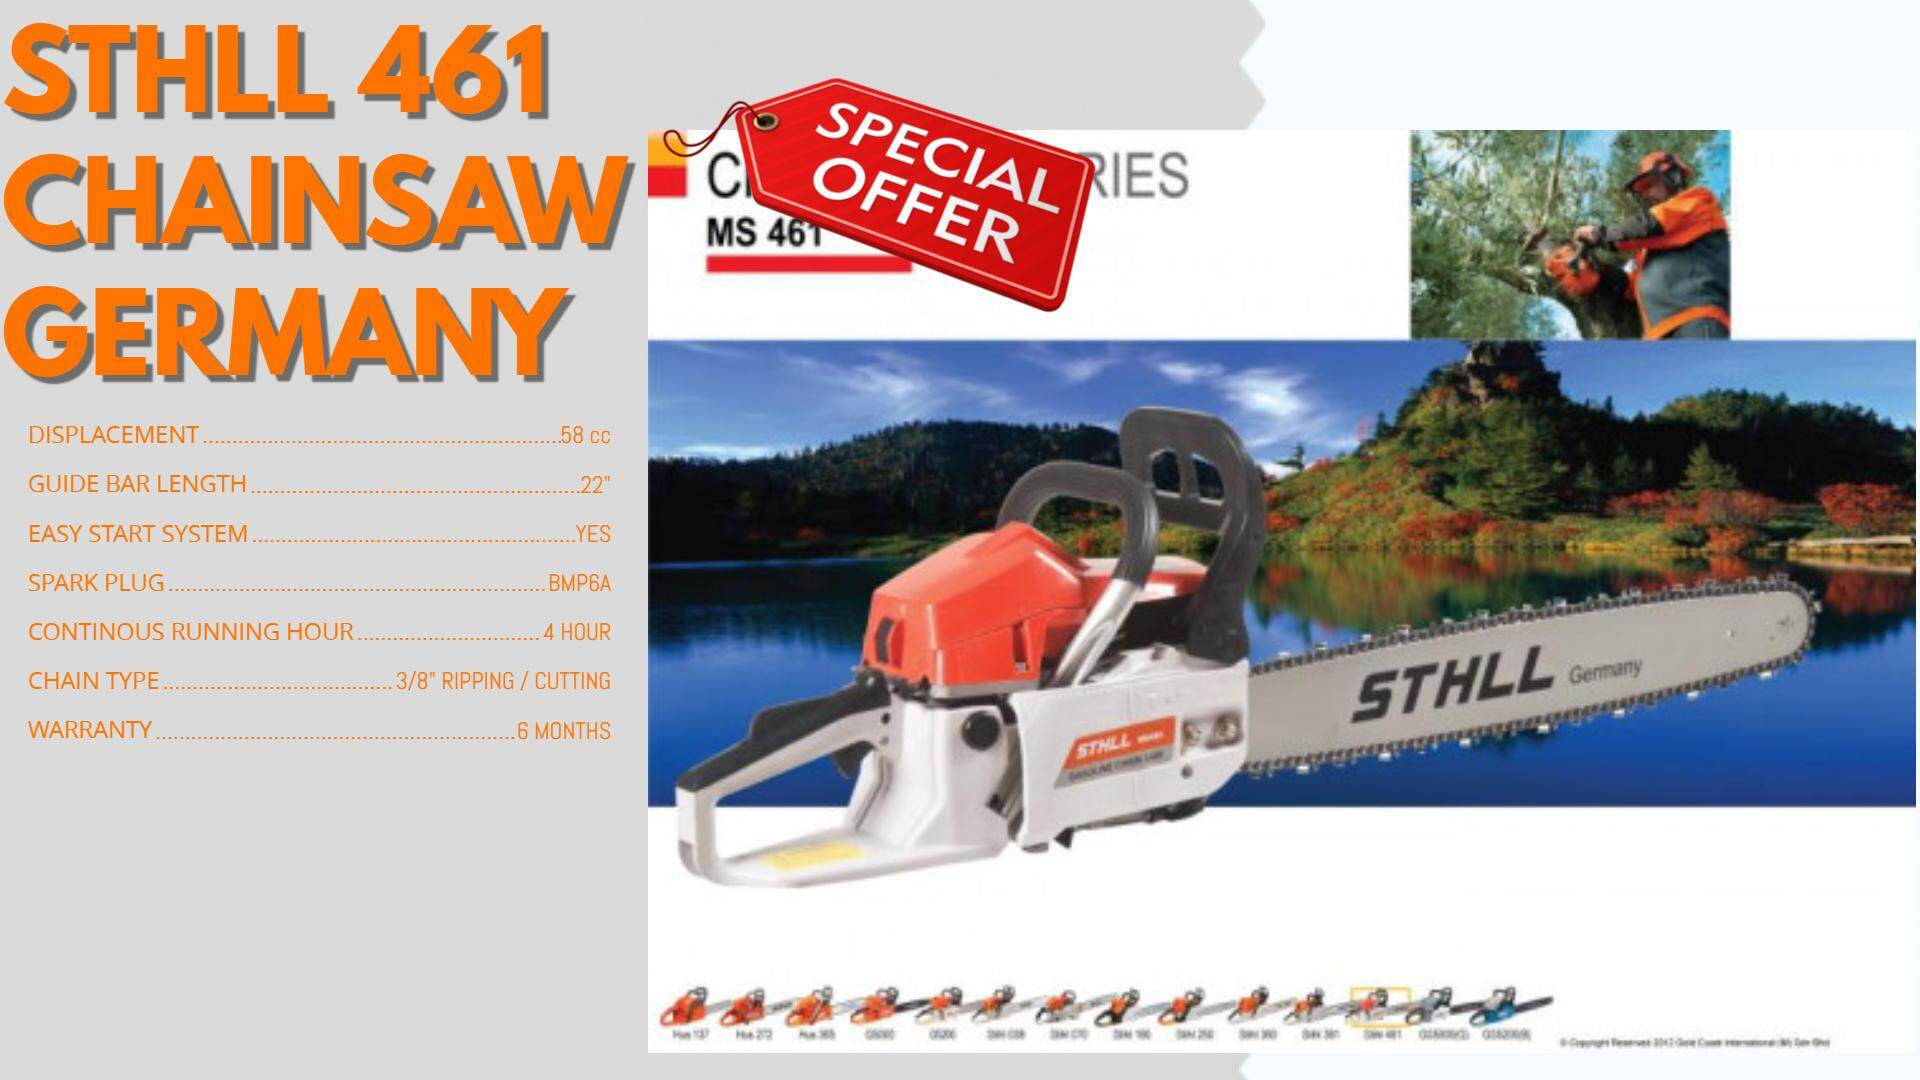 STHLL 461 CHAINSAW GERMANY [ SYN MOH SENG TRADING ]